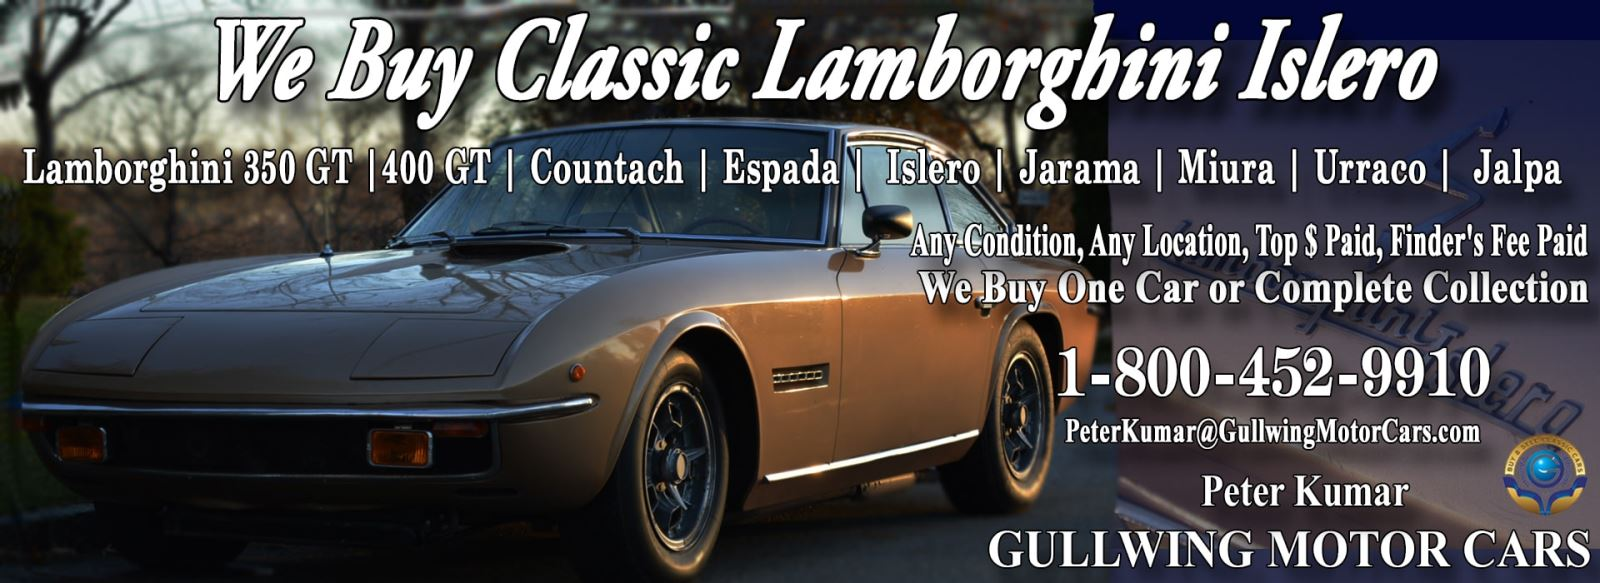 Classic Lamborghini Islero for sale, we buy vintage Lamborghini Islero. Call Peter Kumar. Gullwing Motor